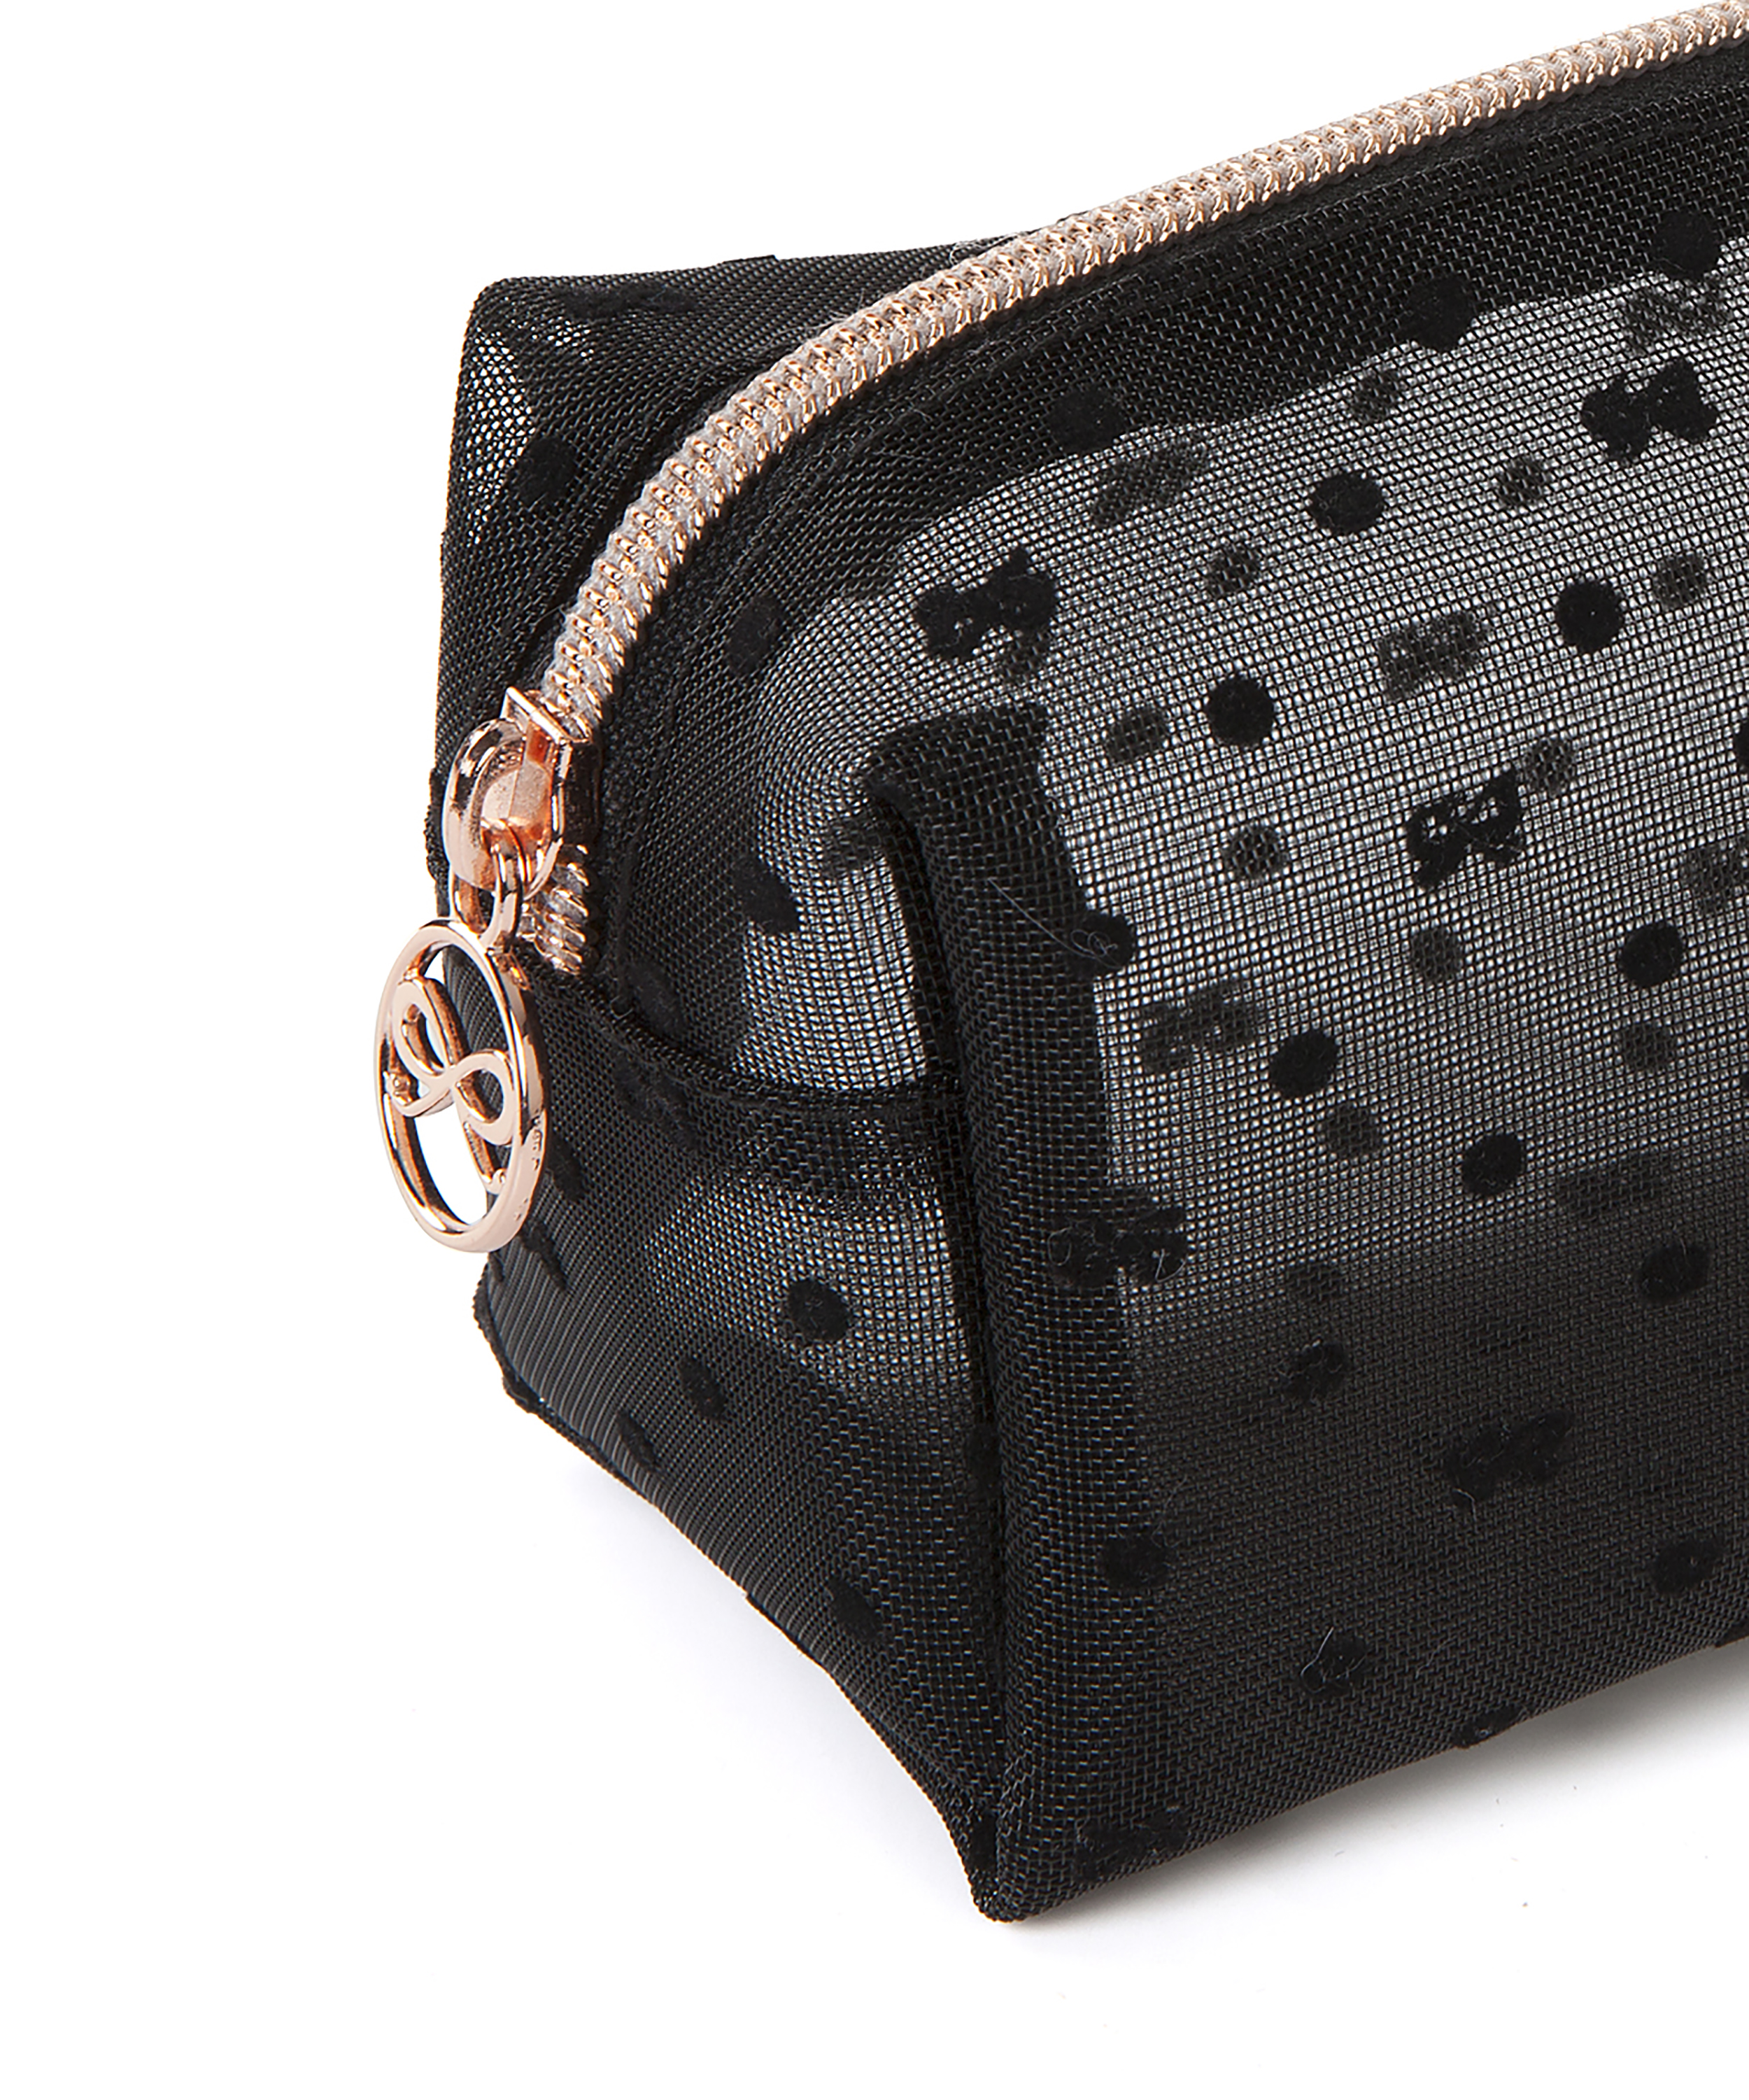 Make-up tas Dot Mesh, Zwart, main